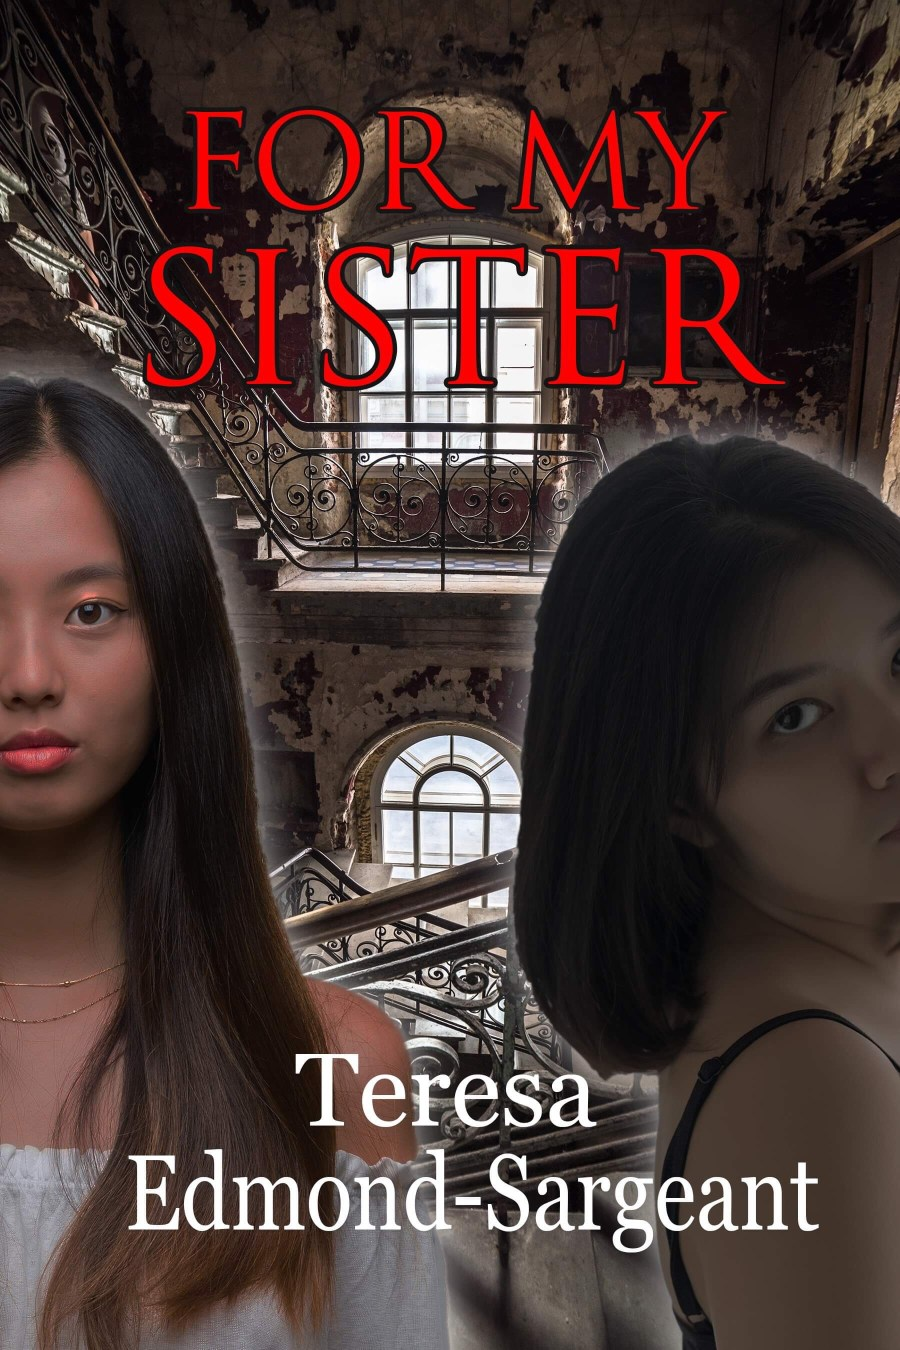 For My Sister: A Short Story by Teresa Edmond-Sargeant